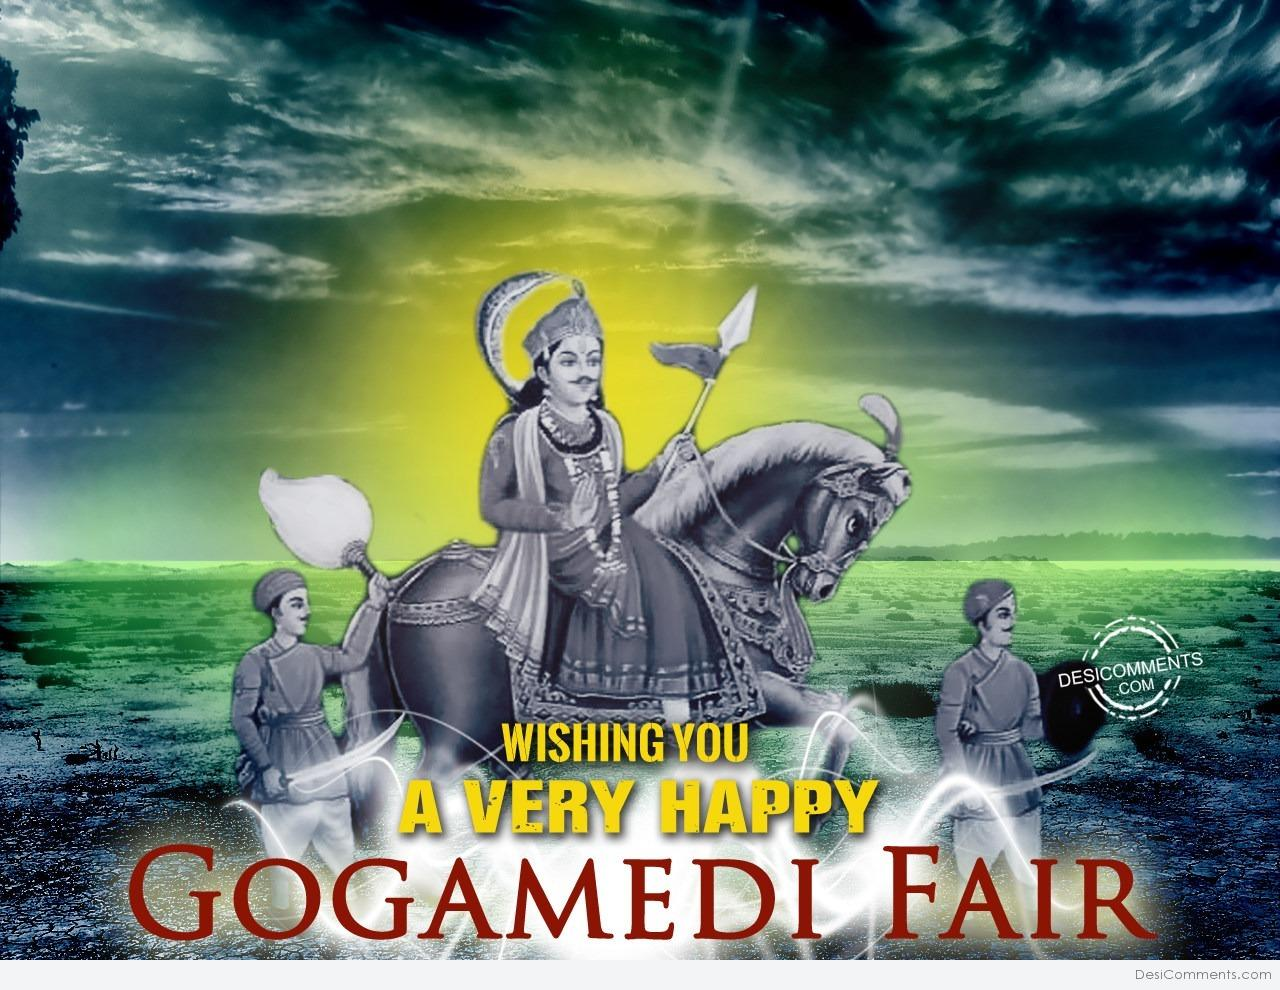 Letest Gogamedi Fair Pictures for free download